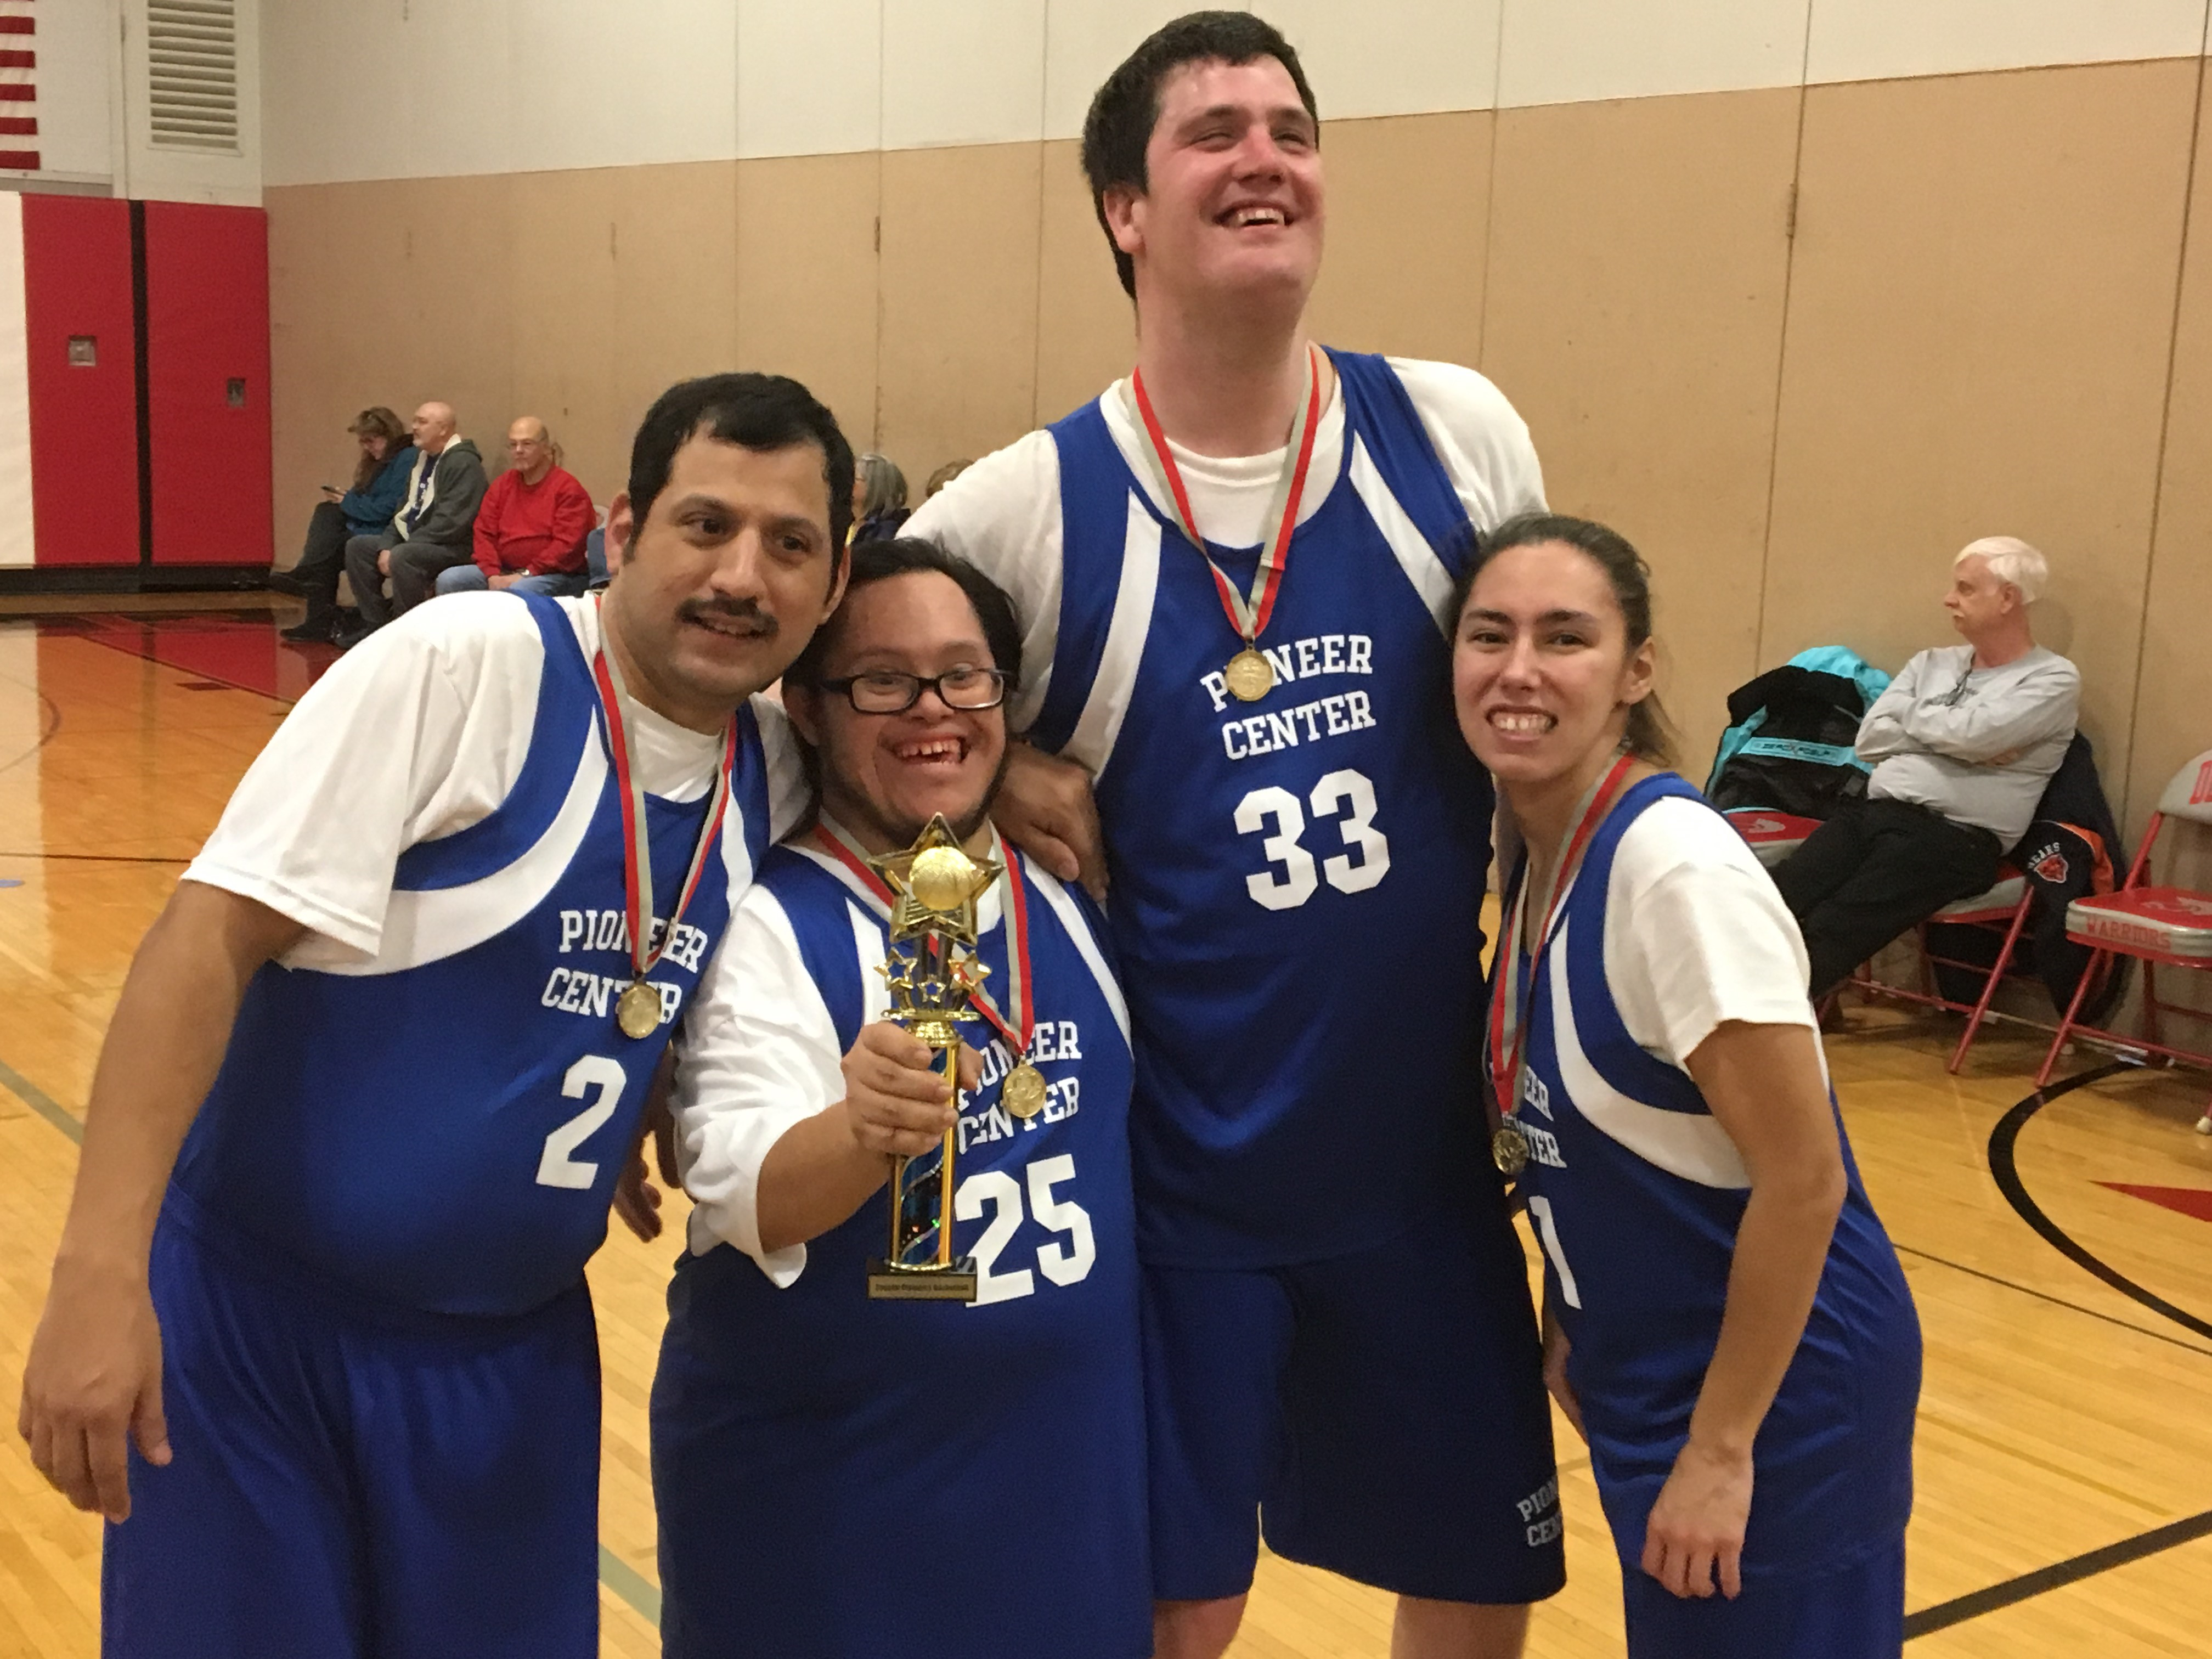 Pioneer Center Special Olympics Basketball Teams Win GOLD